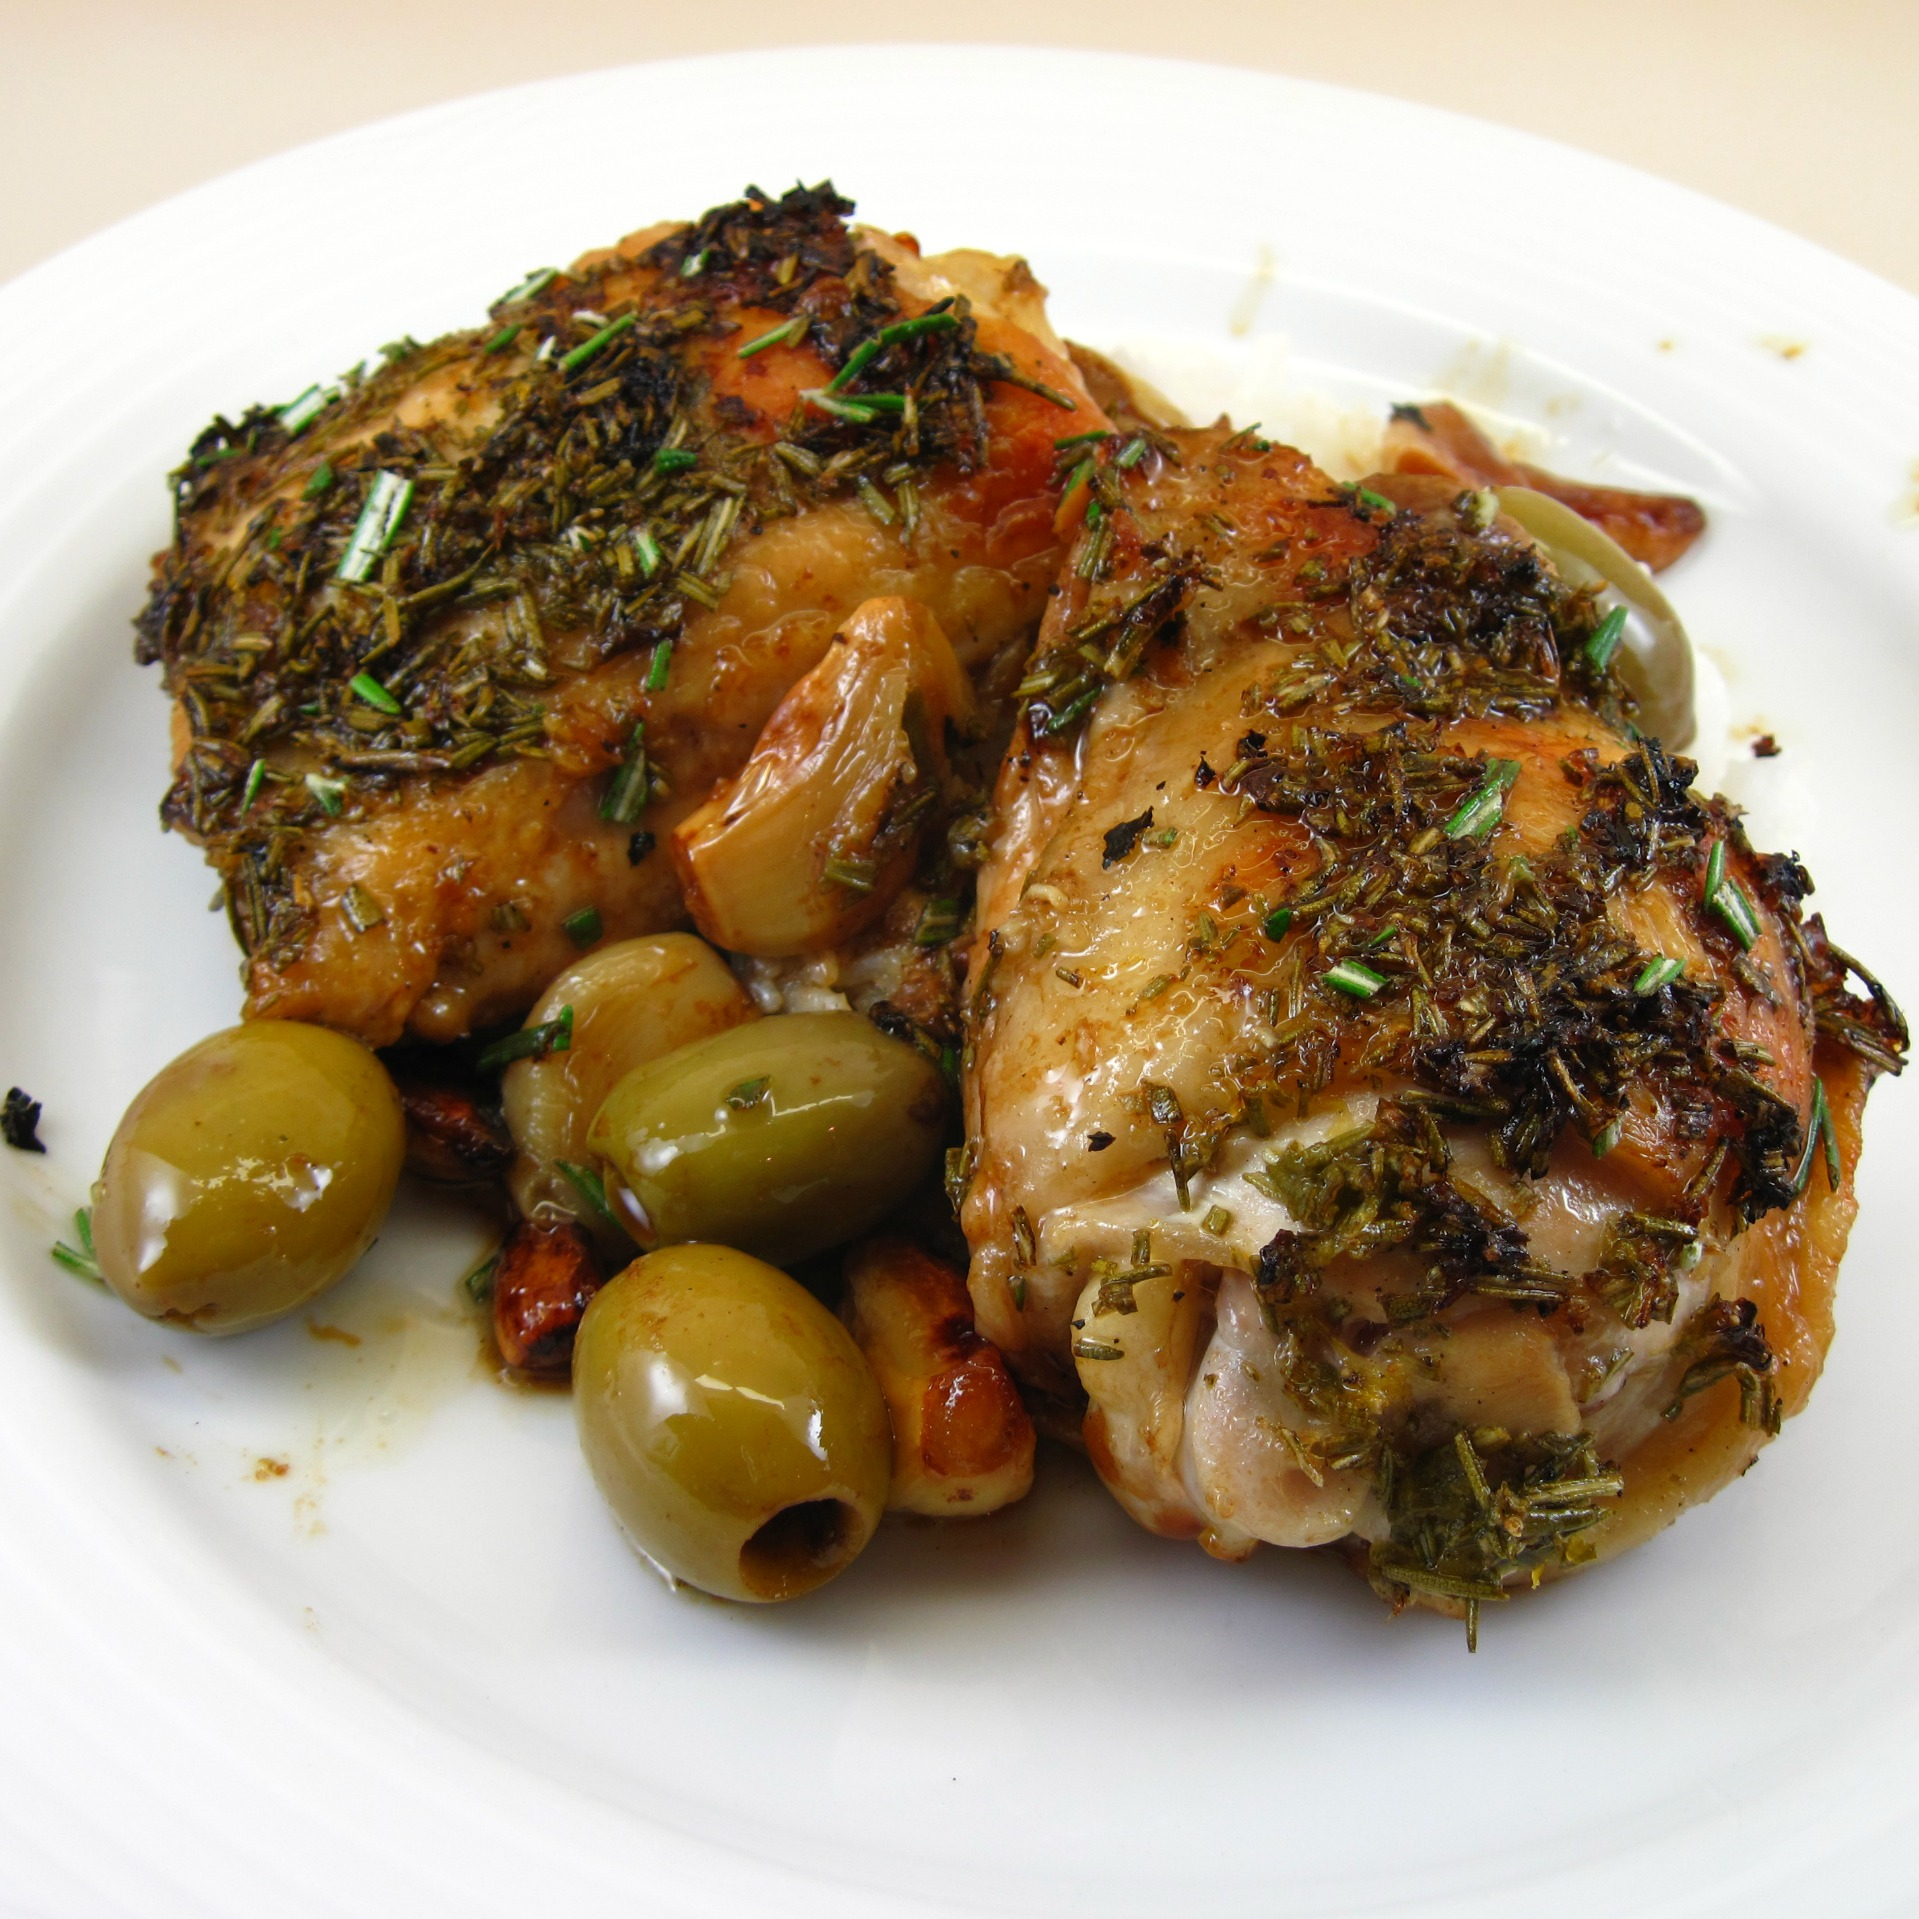 Roast Lemon-Garlic Chicken with Green Olives | In the kitchen with ...